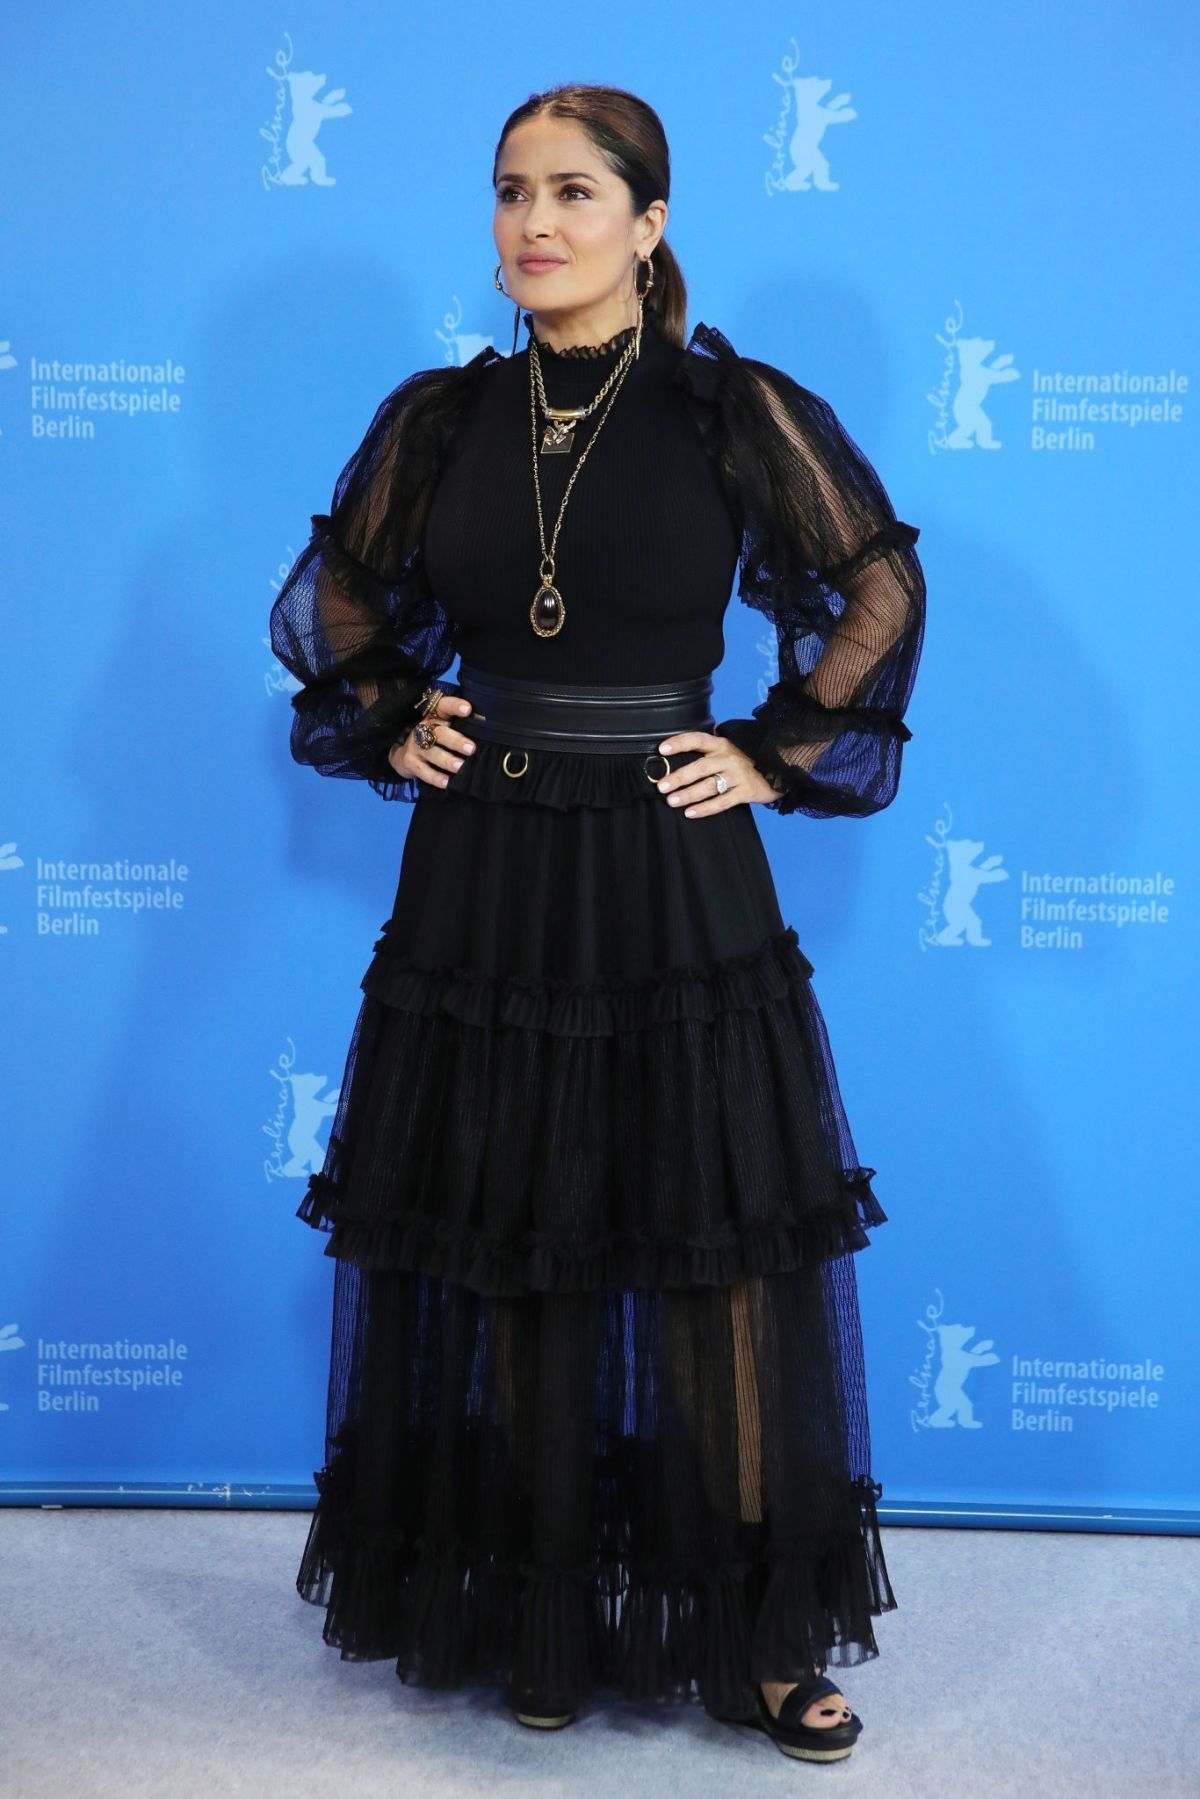 salma-hayek-at-the-roads-not-taken-photo-call-70th-berlinale-film-festival-1